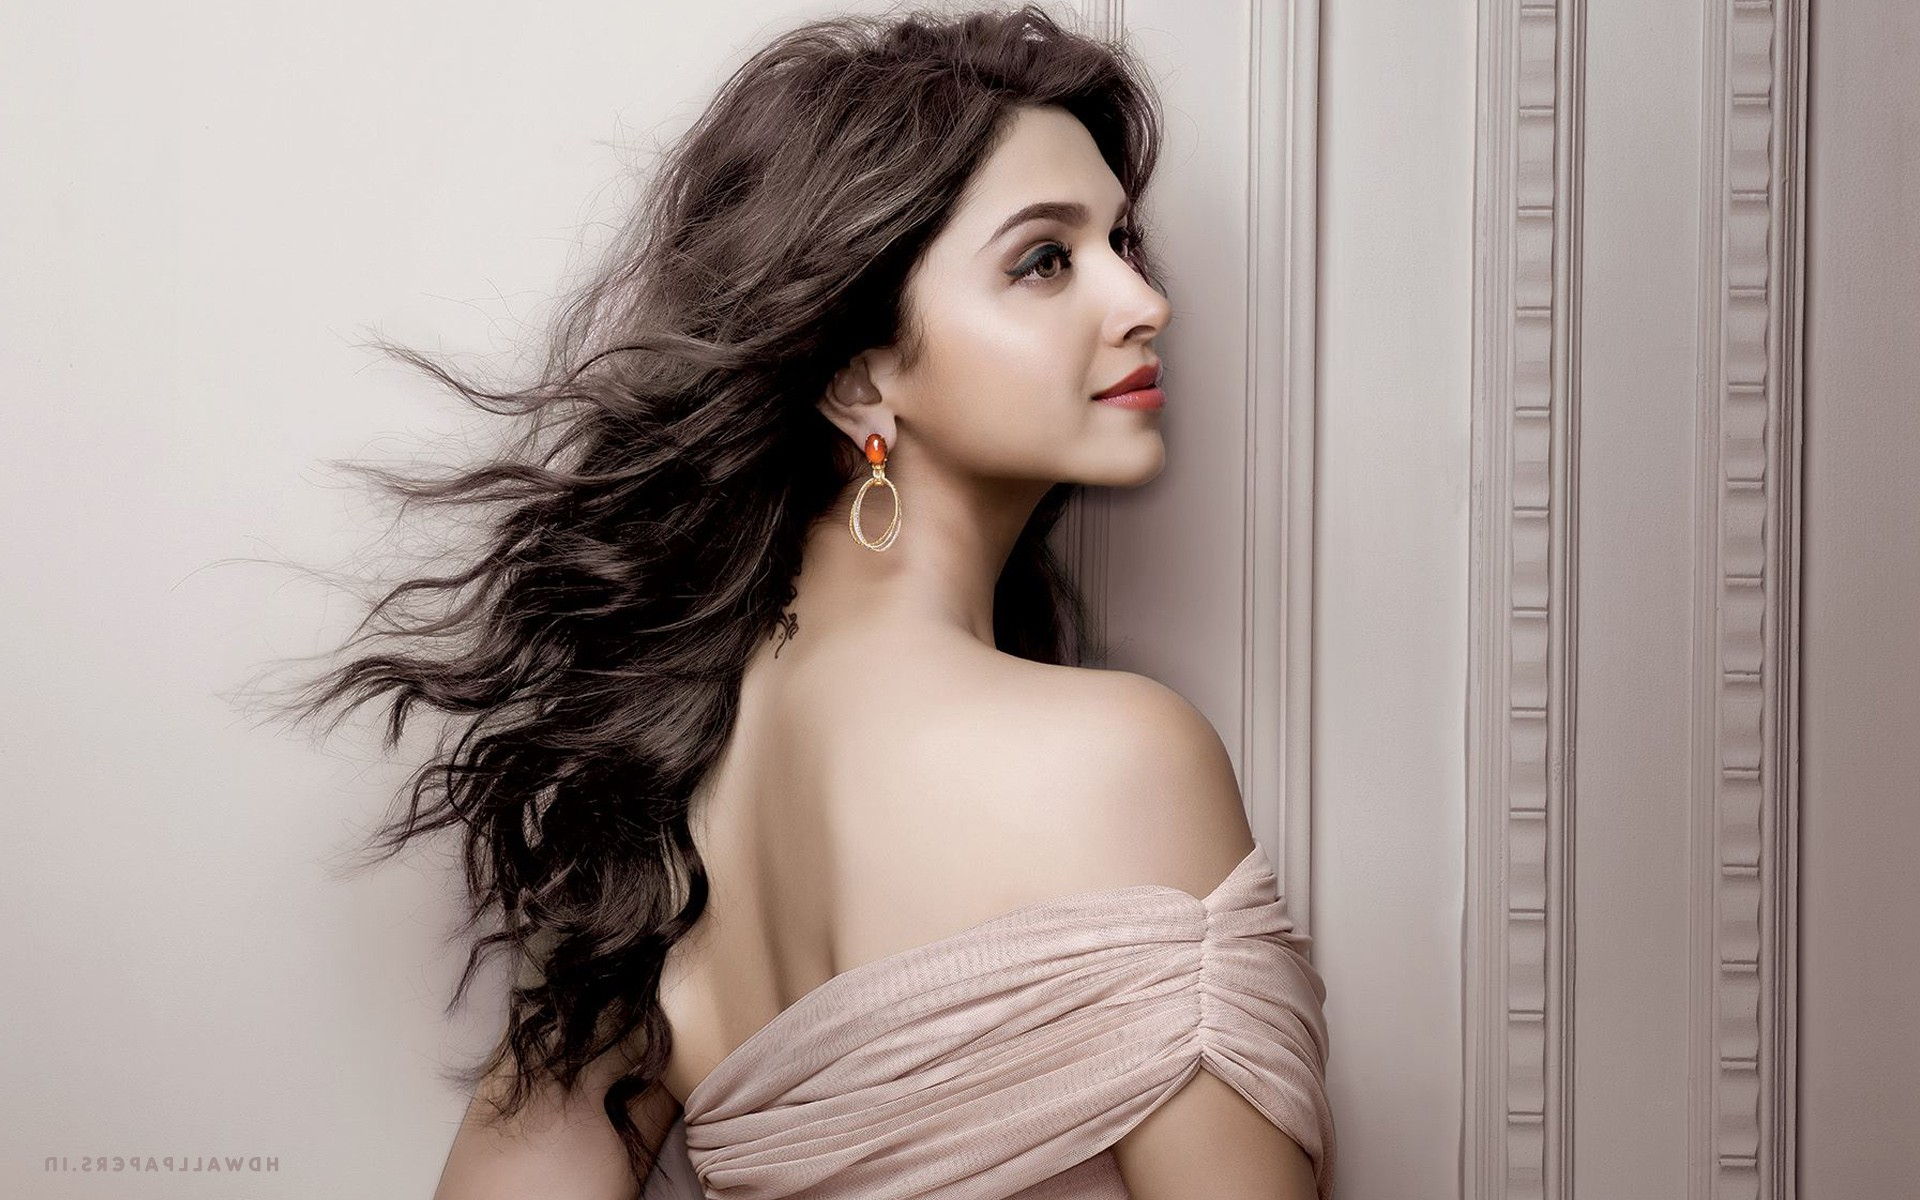 Deepika Padukone 1 Hd Indian Celebrities 4k Wallpapers